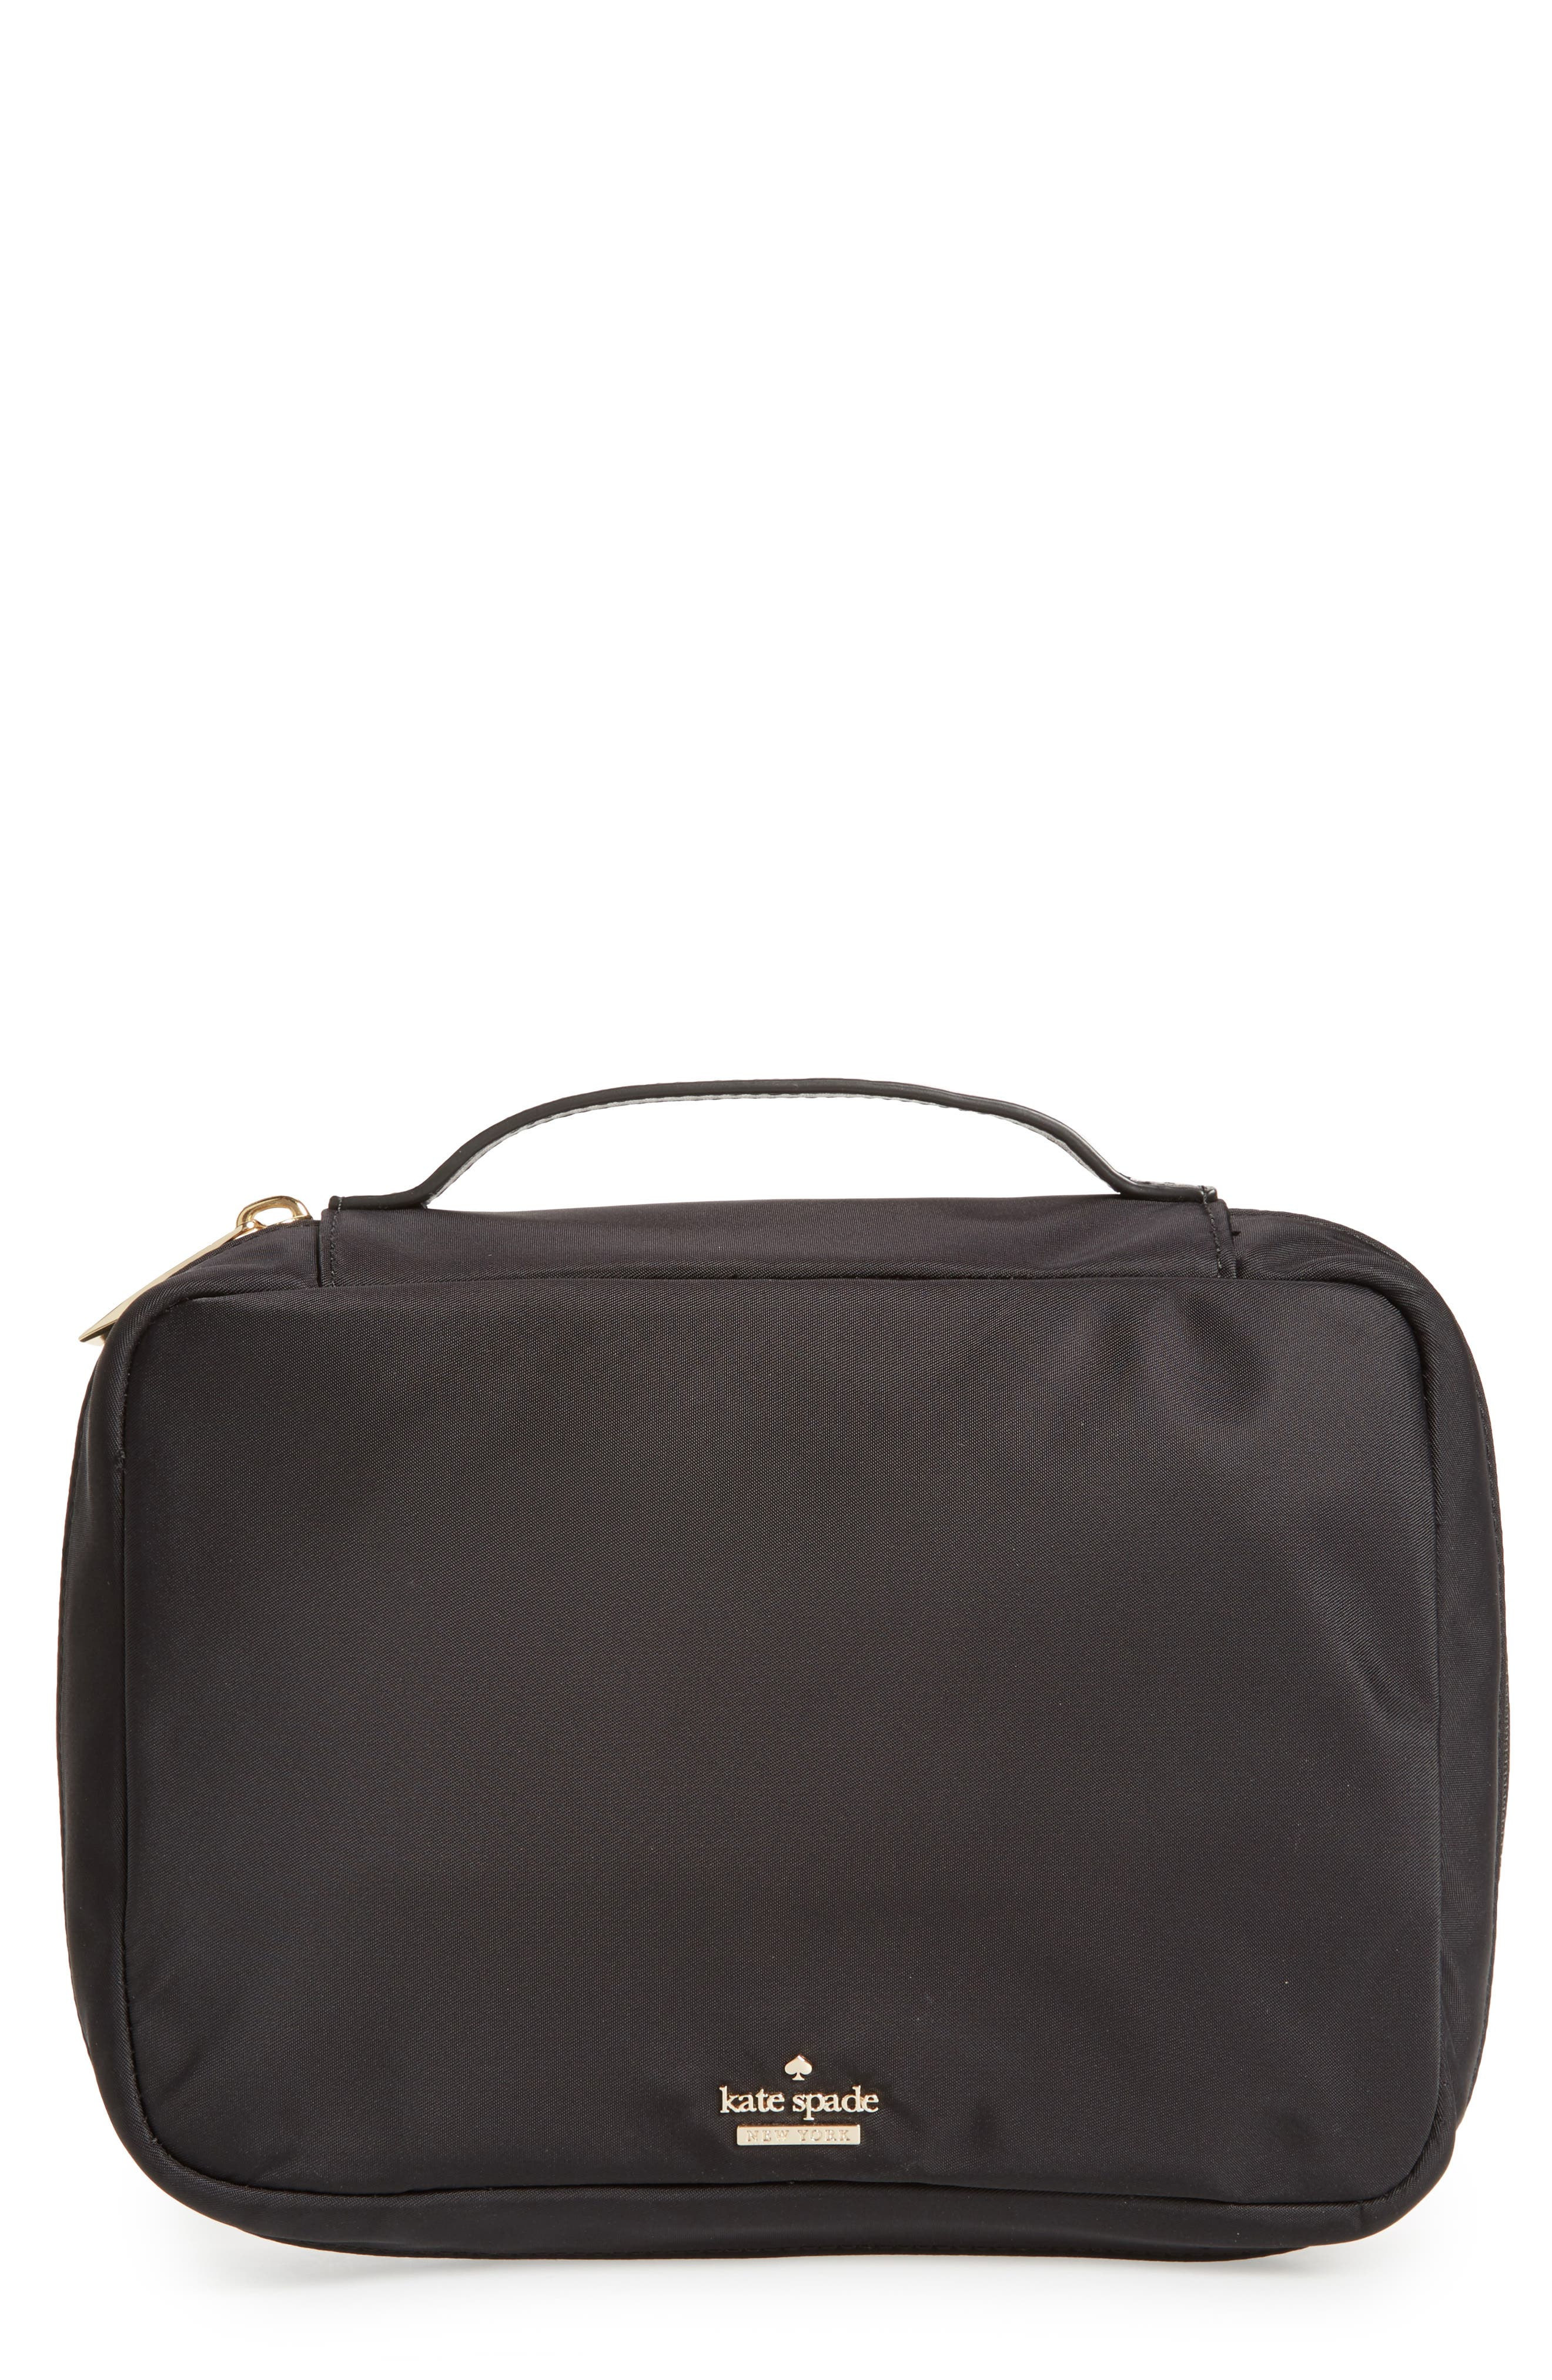 Alternate Image 1 Selected - kate spade new york classic baylor nylon cosmetics case